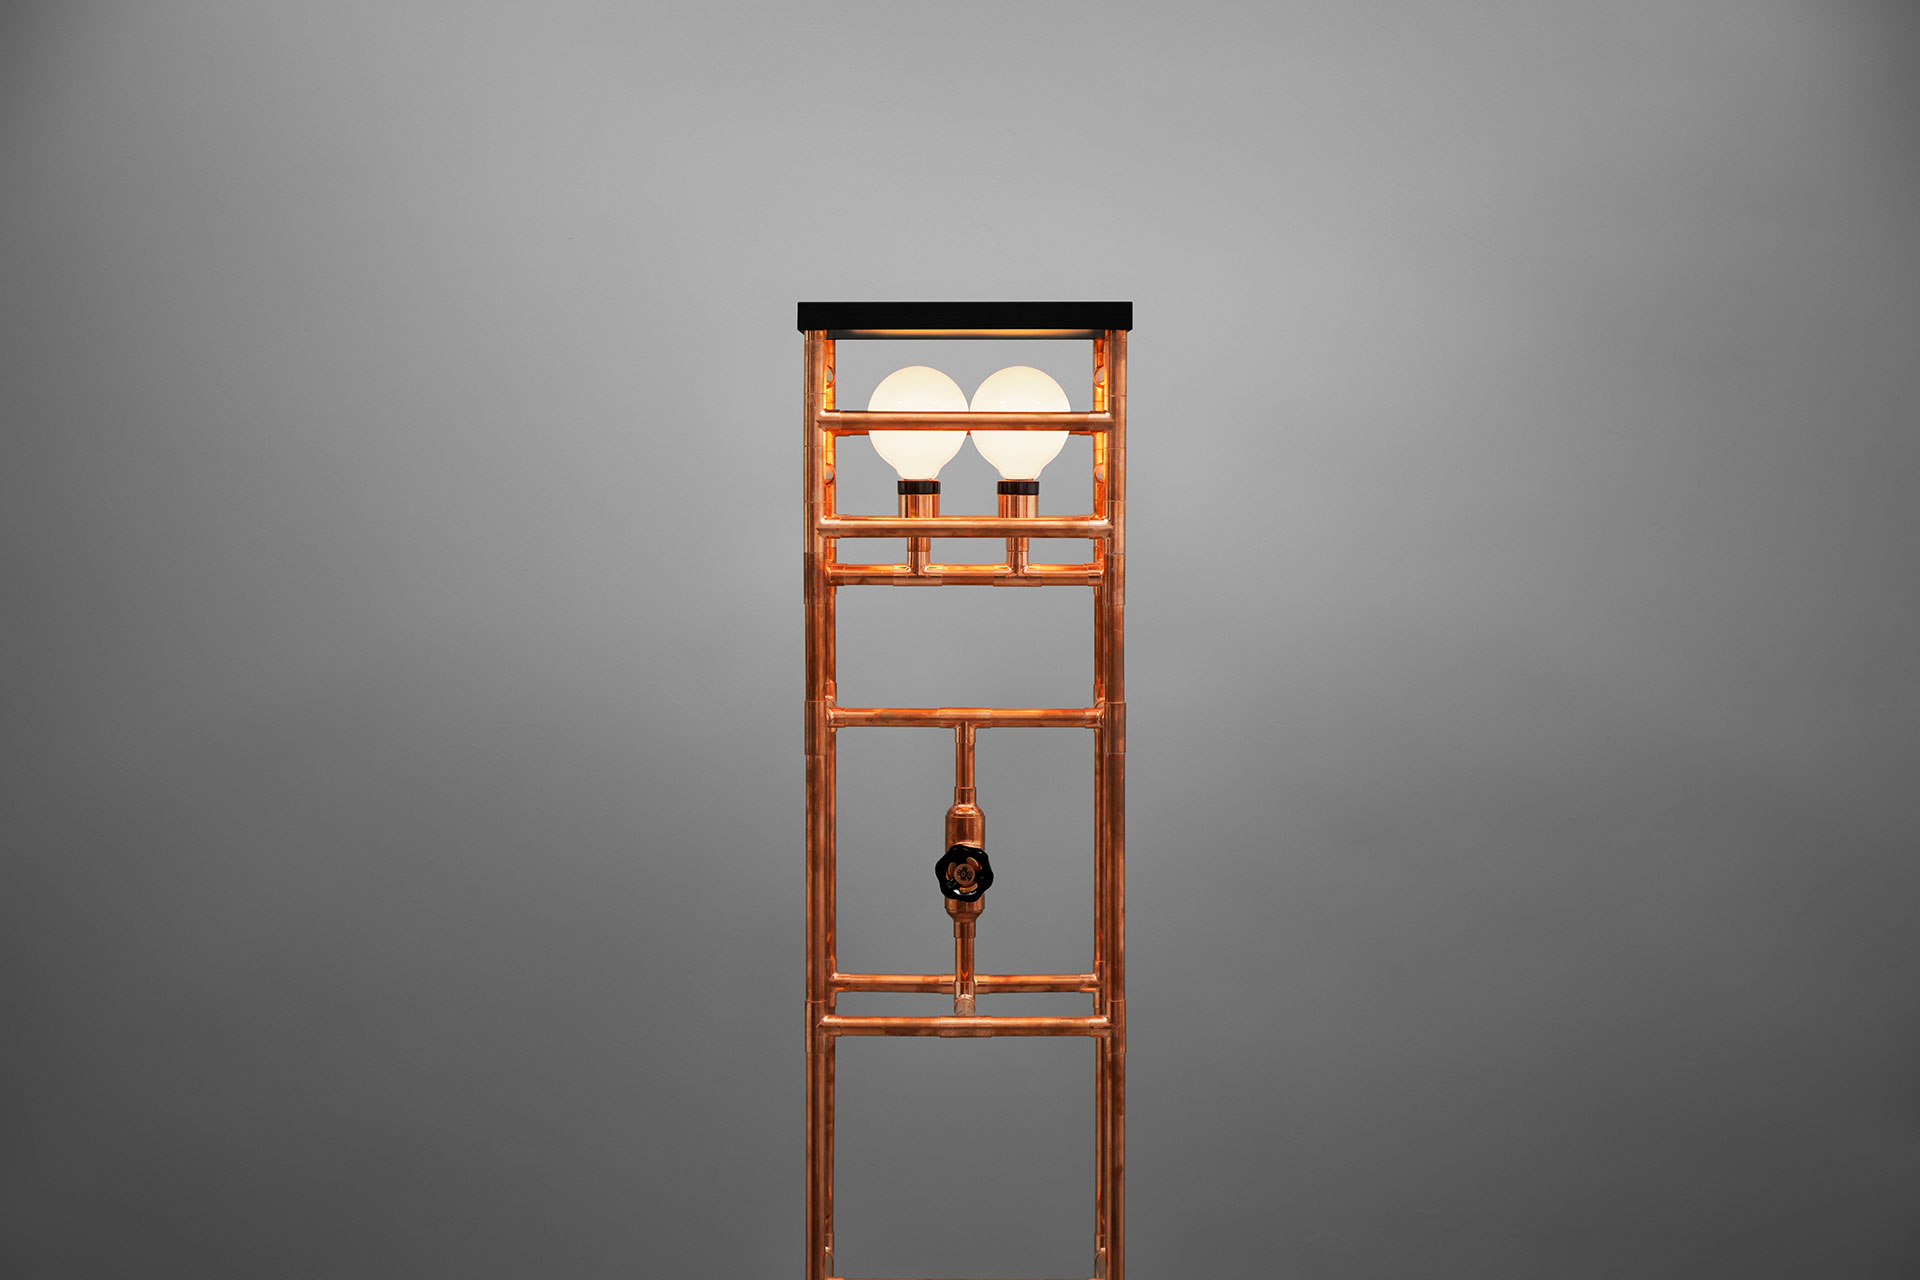 Steampunk design floor lamp in trendy copper or gold brass with rotary dimmer